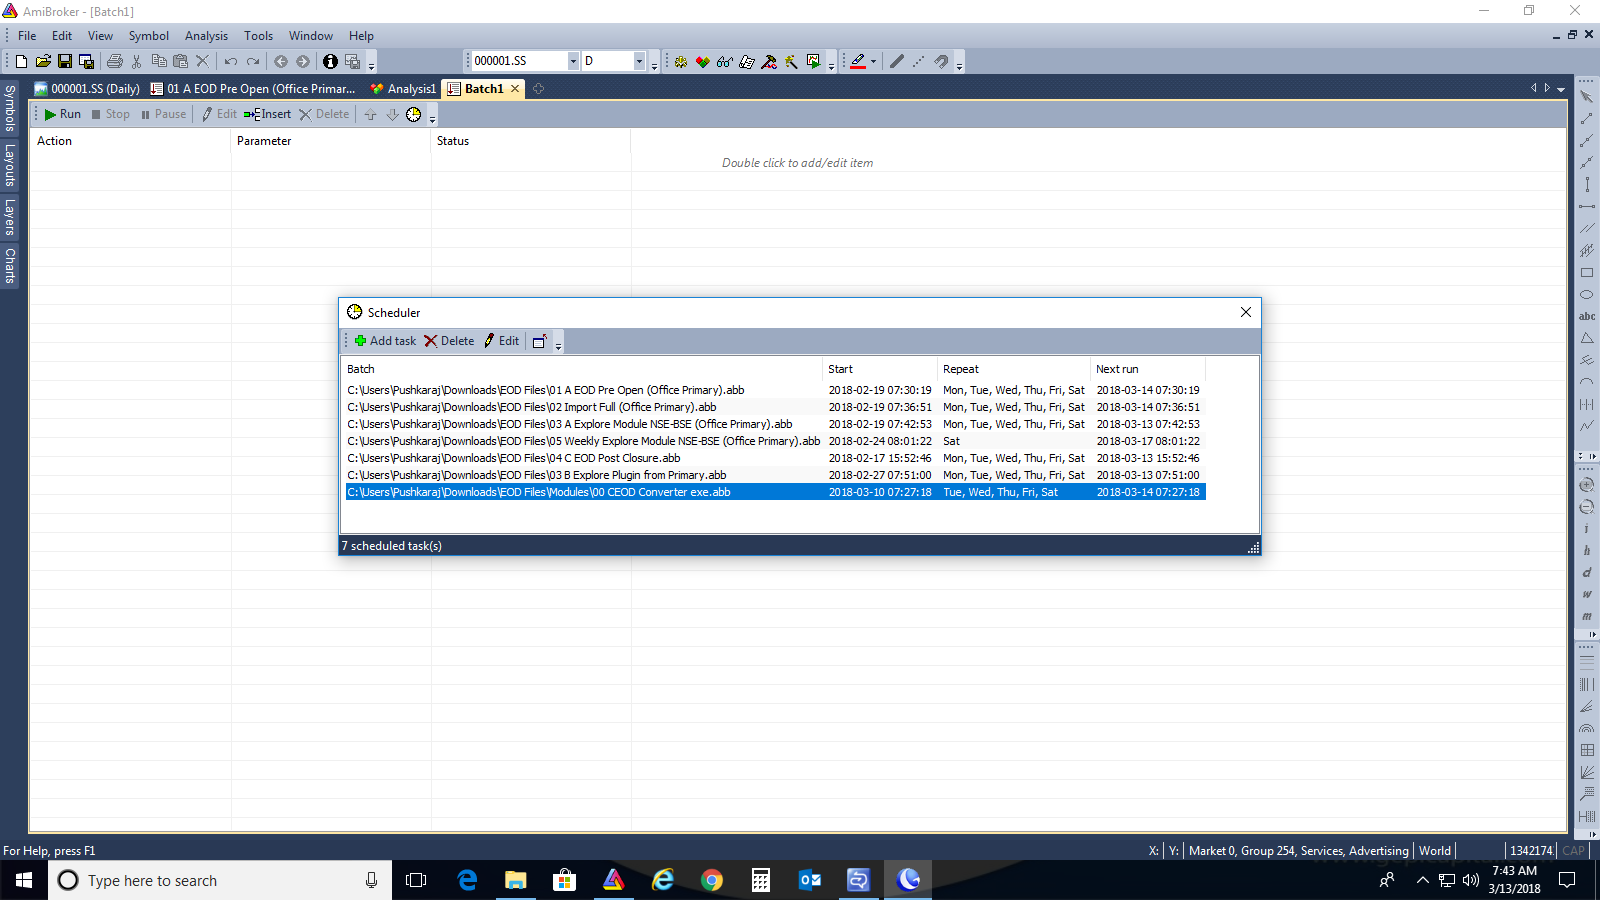 Sequencing Batch File Runs When AmiBroker Has Been Closed